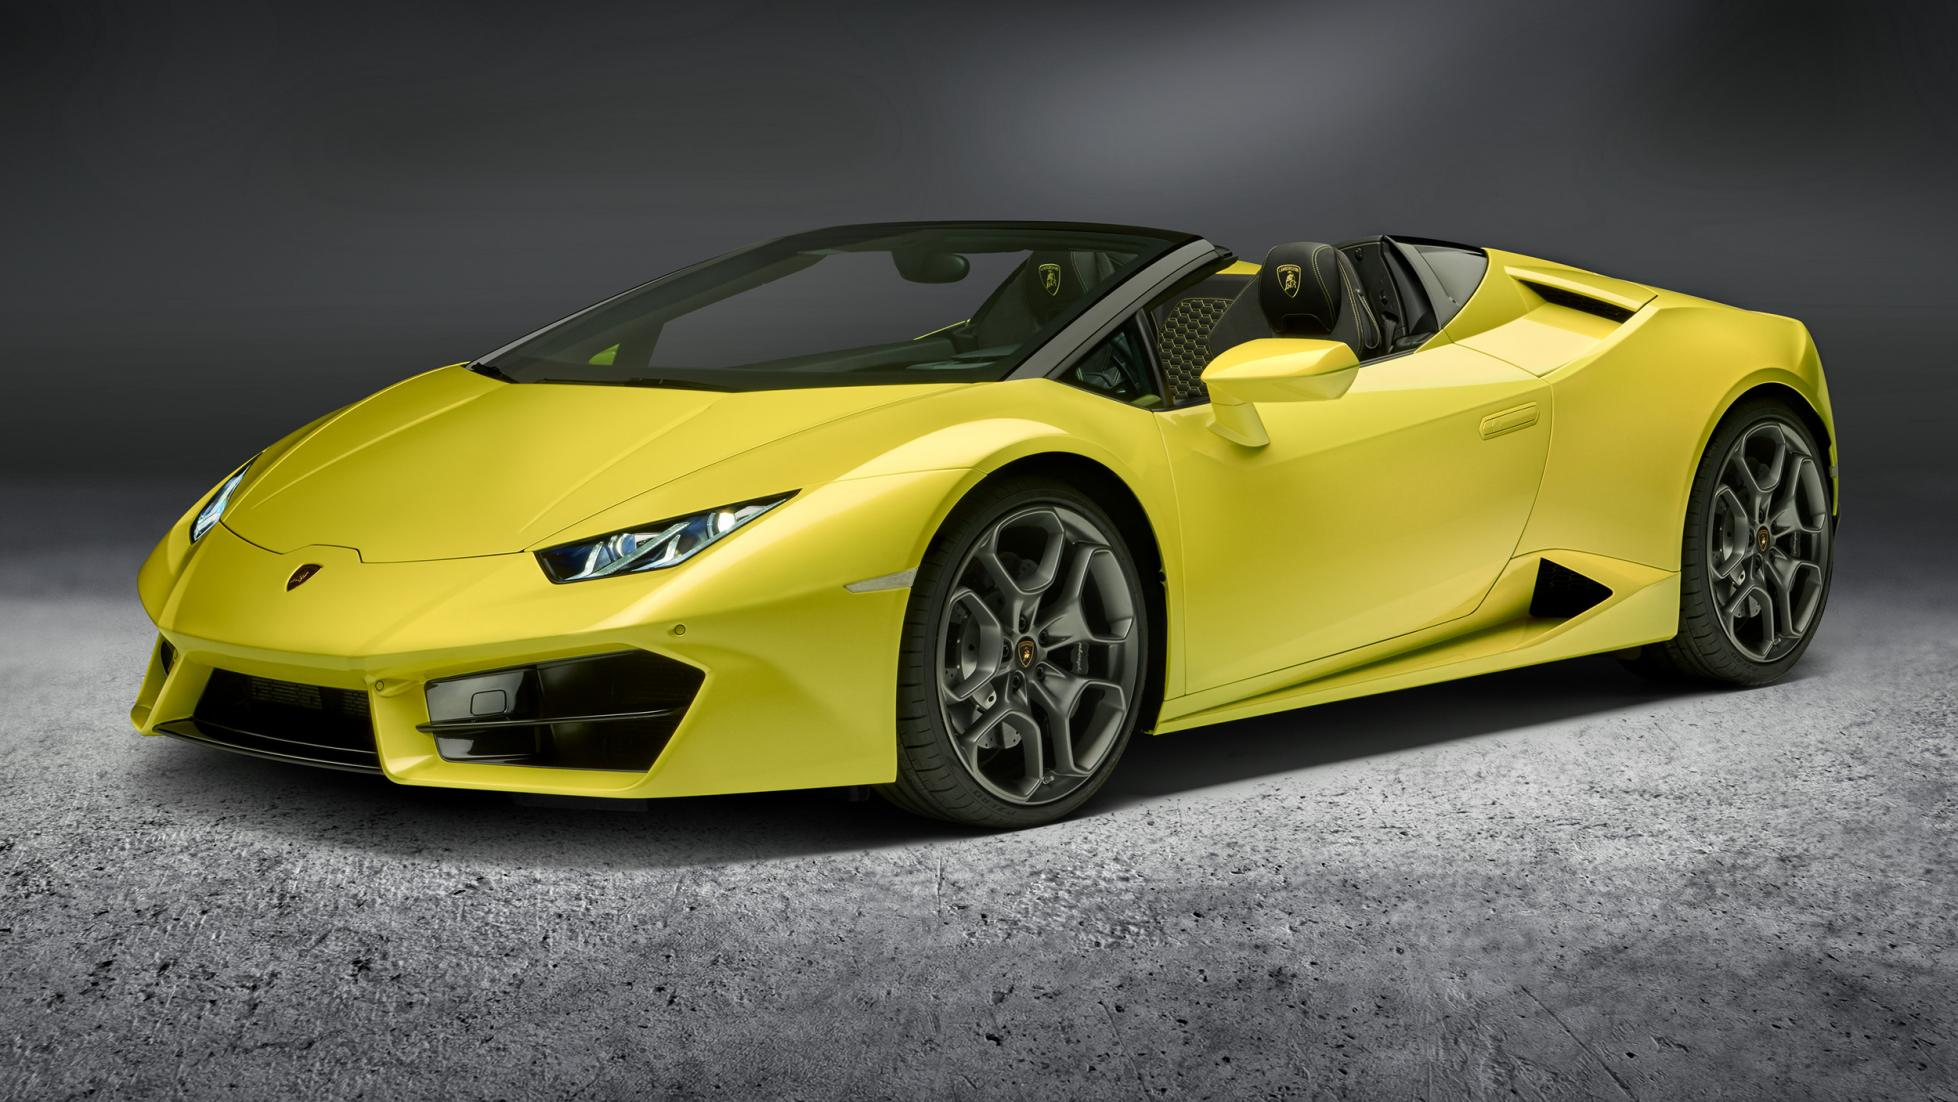 The Rear Wheel Drive Lamborghini Huracan Spyder Oracle Finance